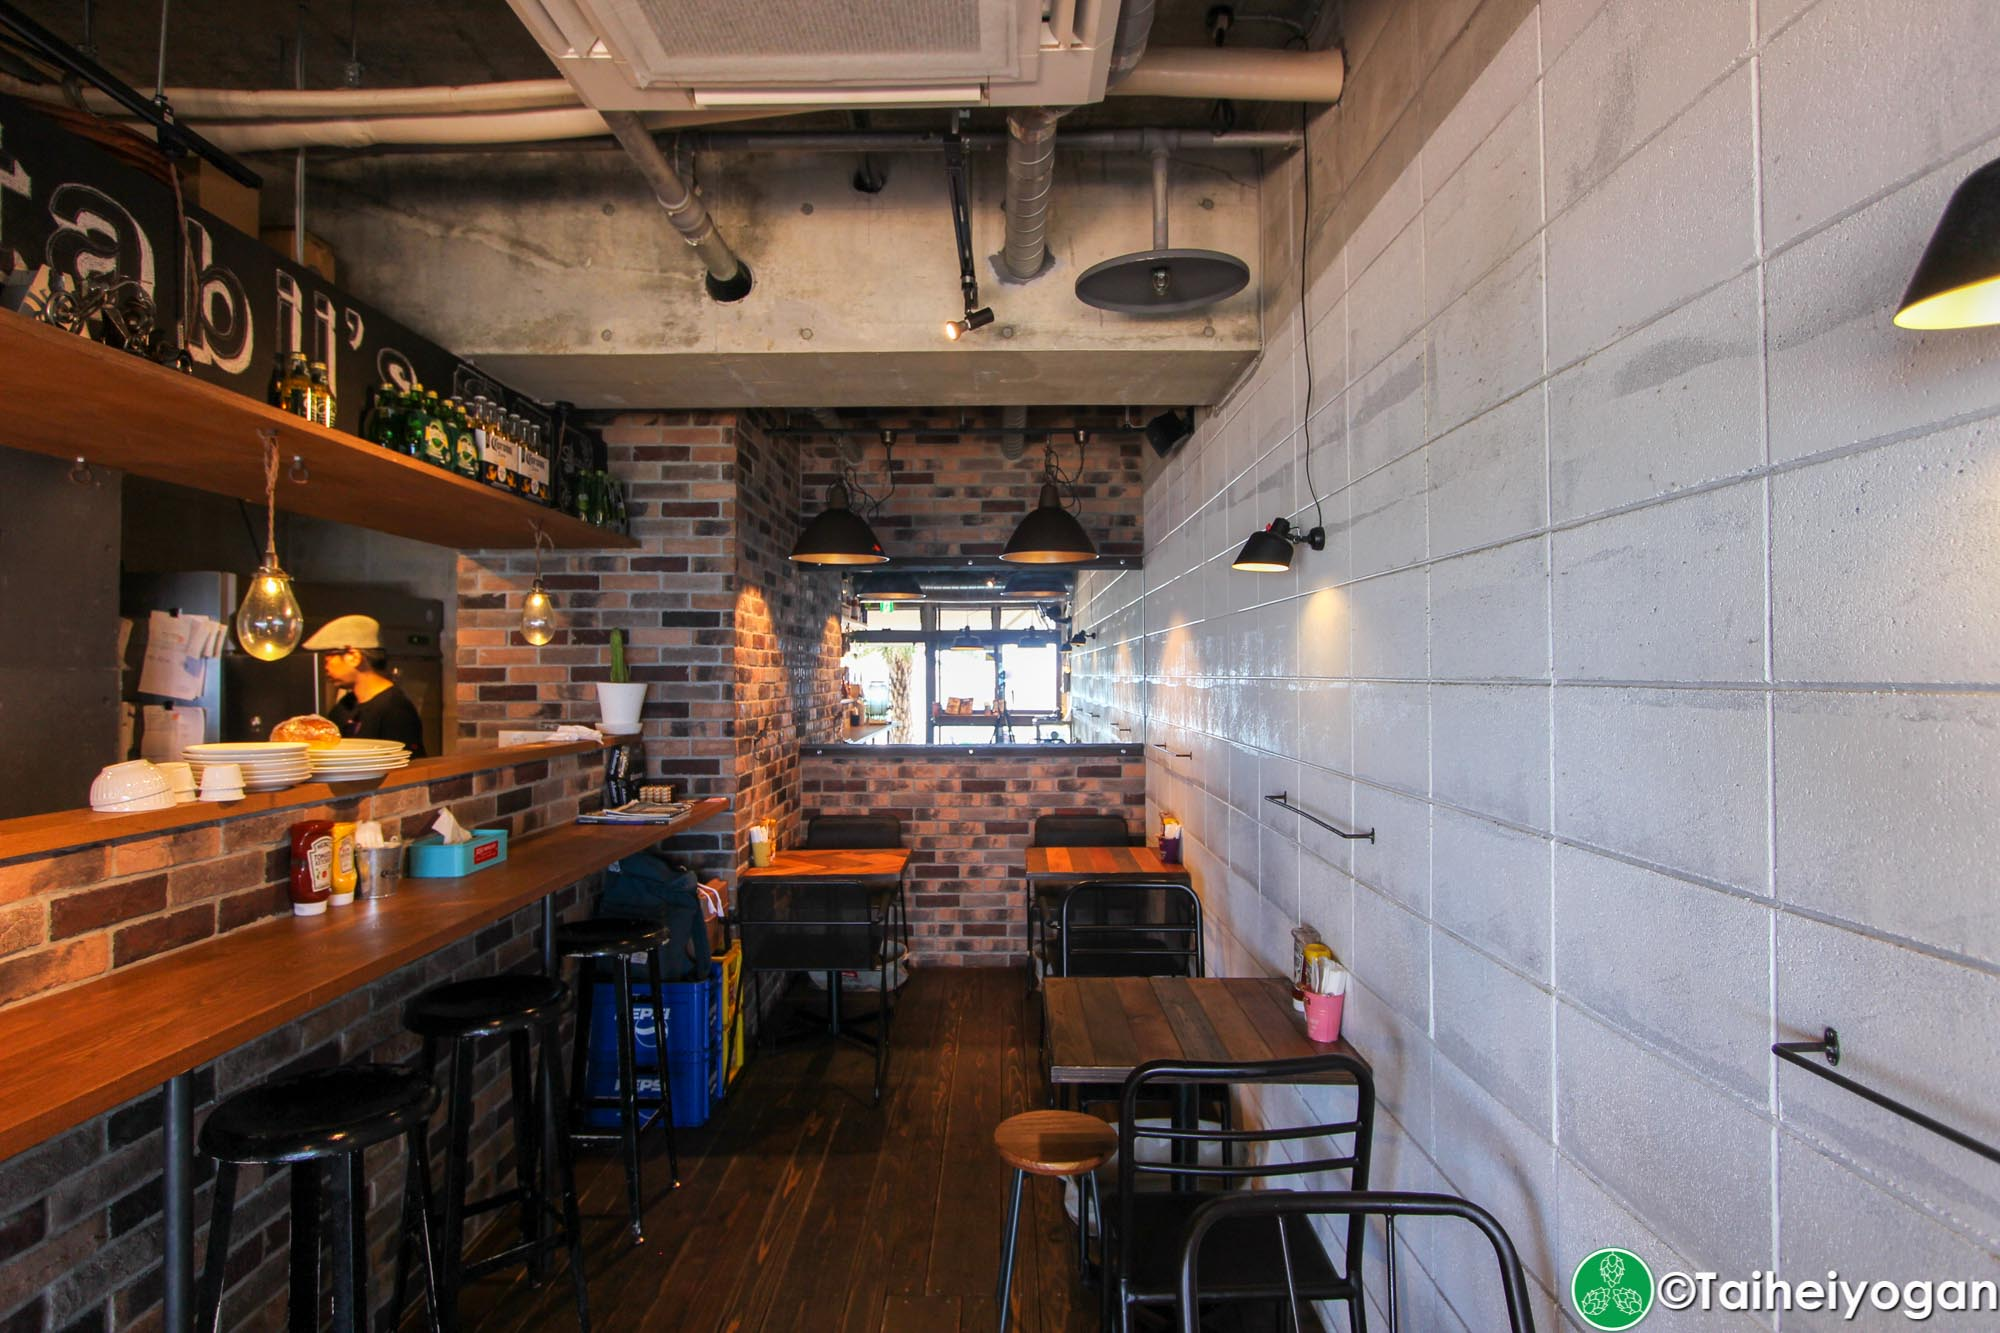 Chatan Burger Base Atabii's - Interior - Seating - Tables